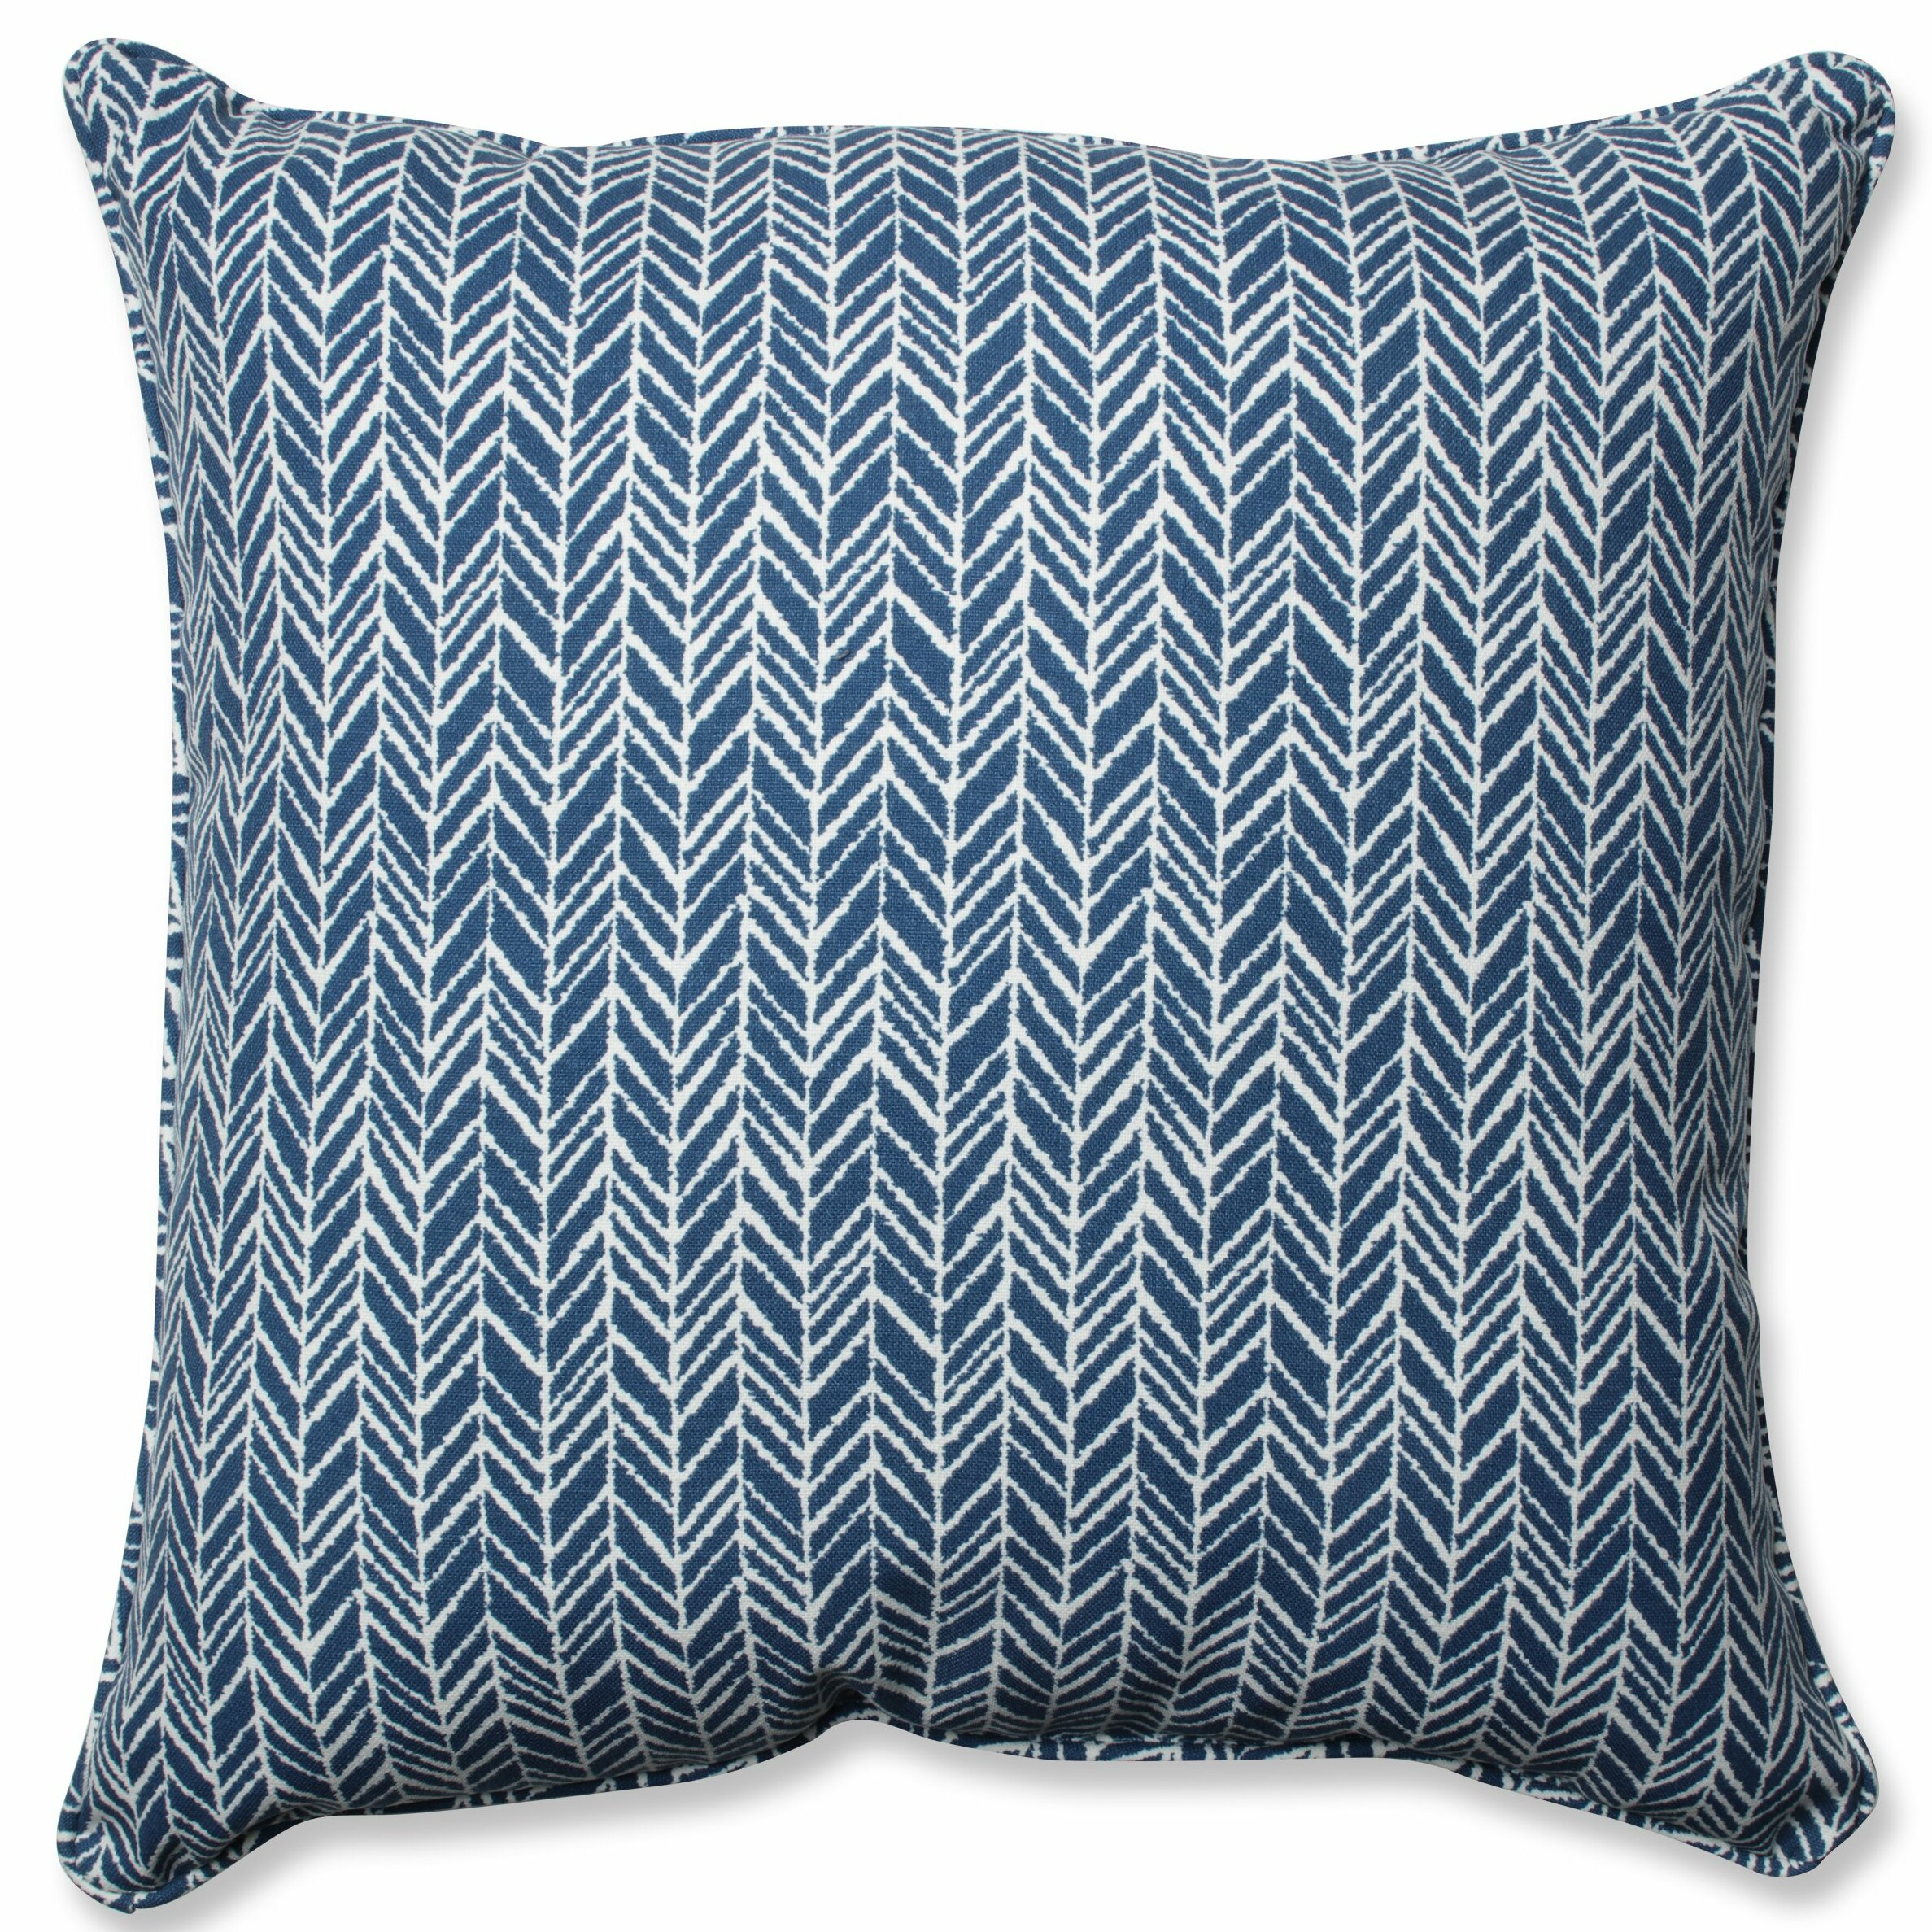 everything know designing custom best on p creating and pillow you etsy to about selling pillows need